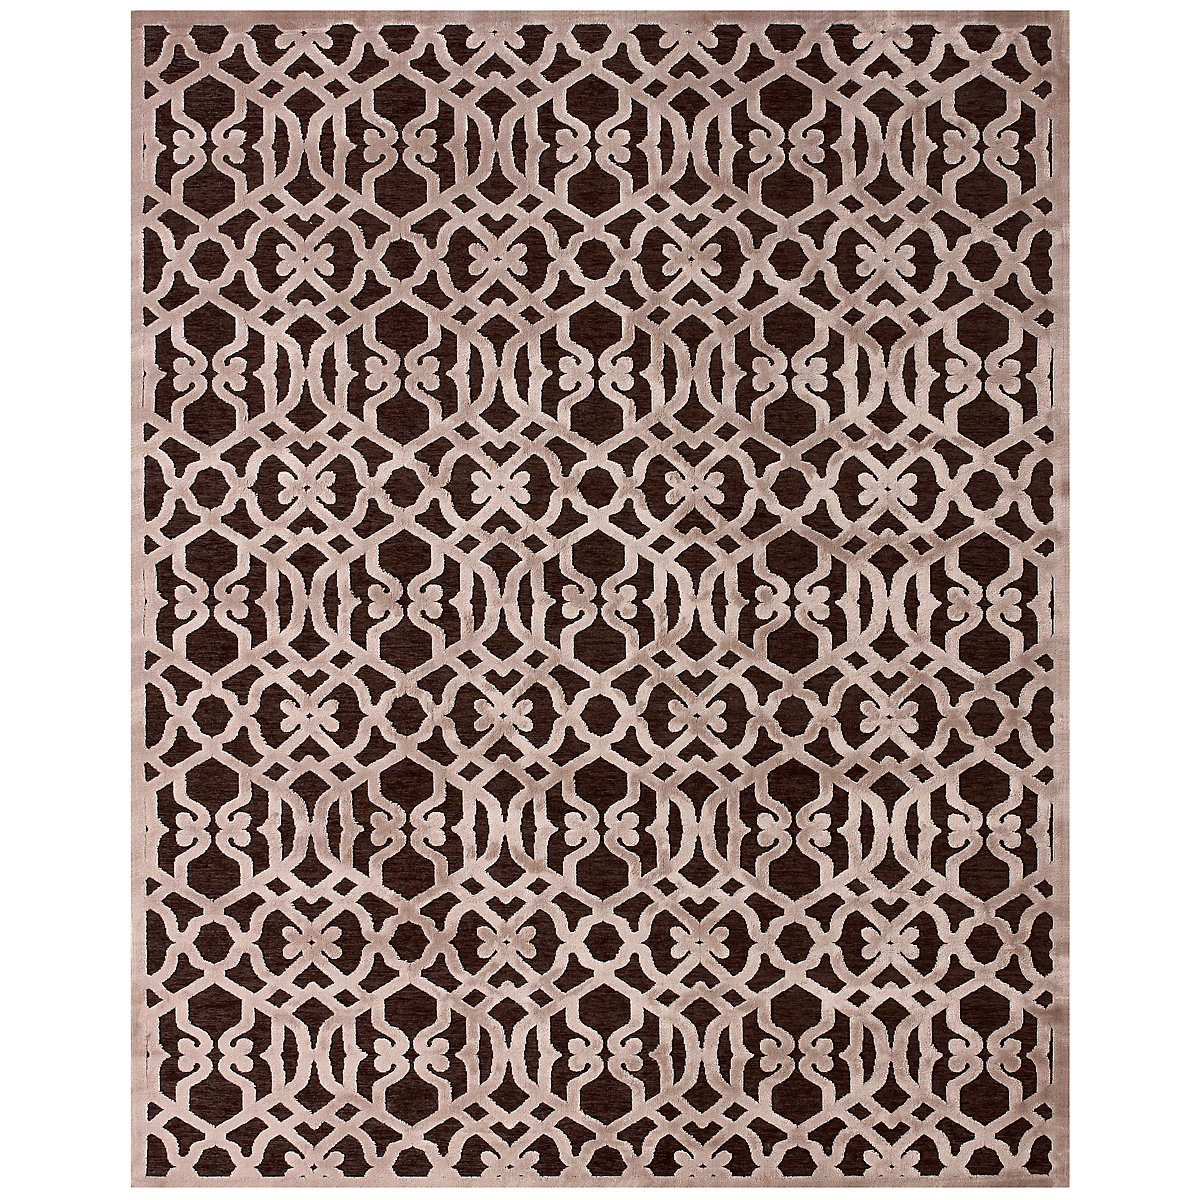 Zam Dark Brown 8X11 Area Rug